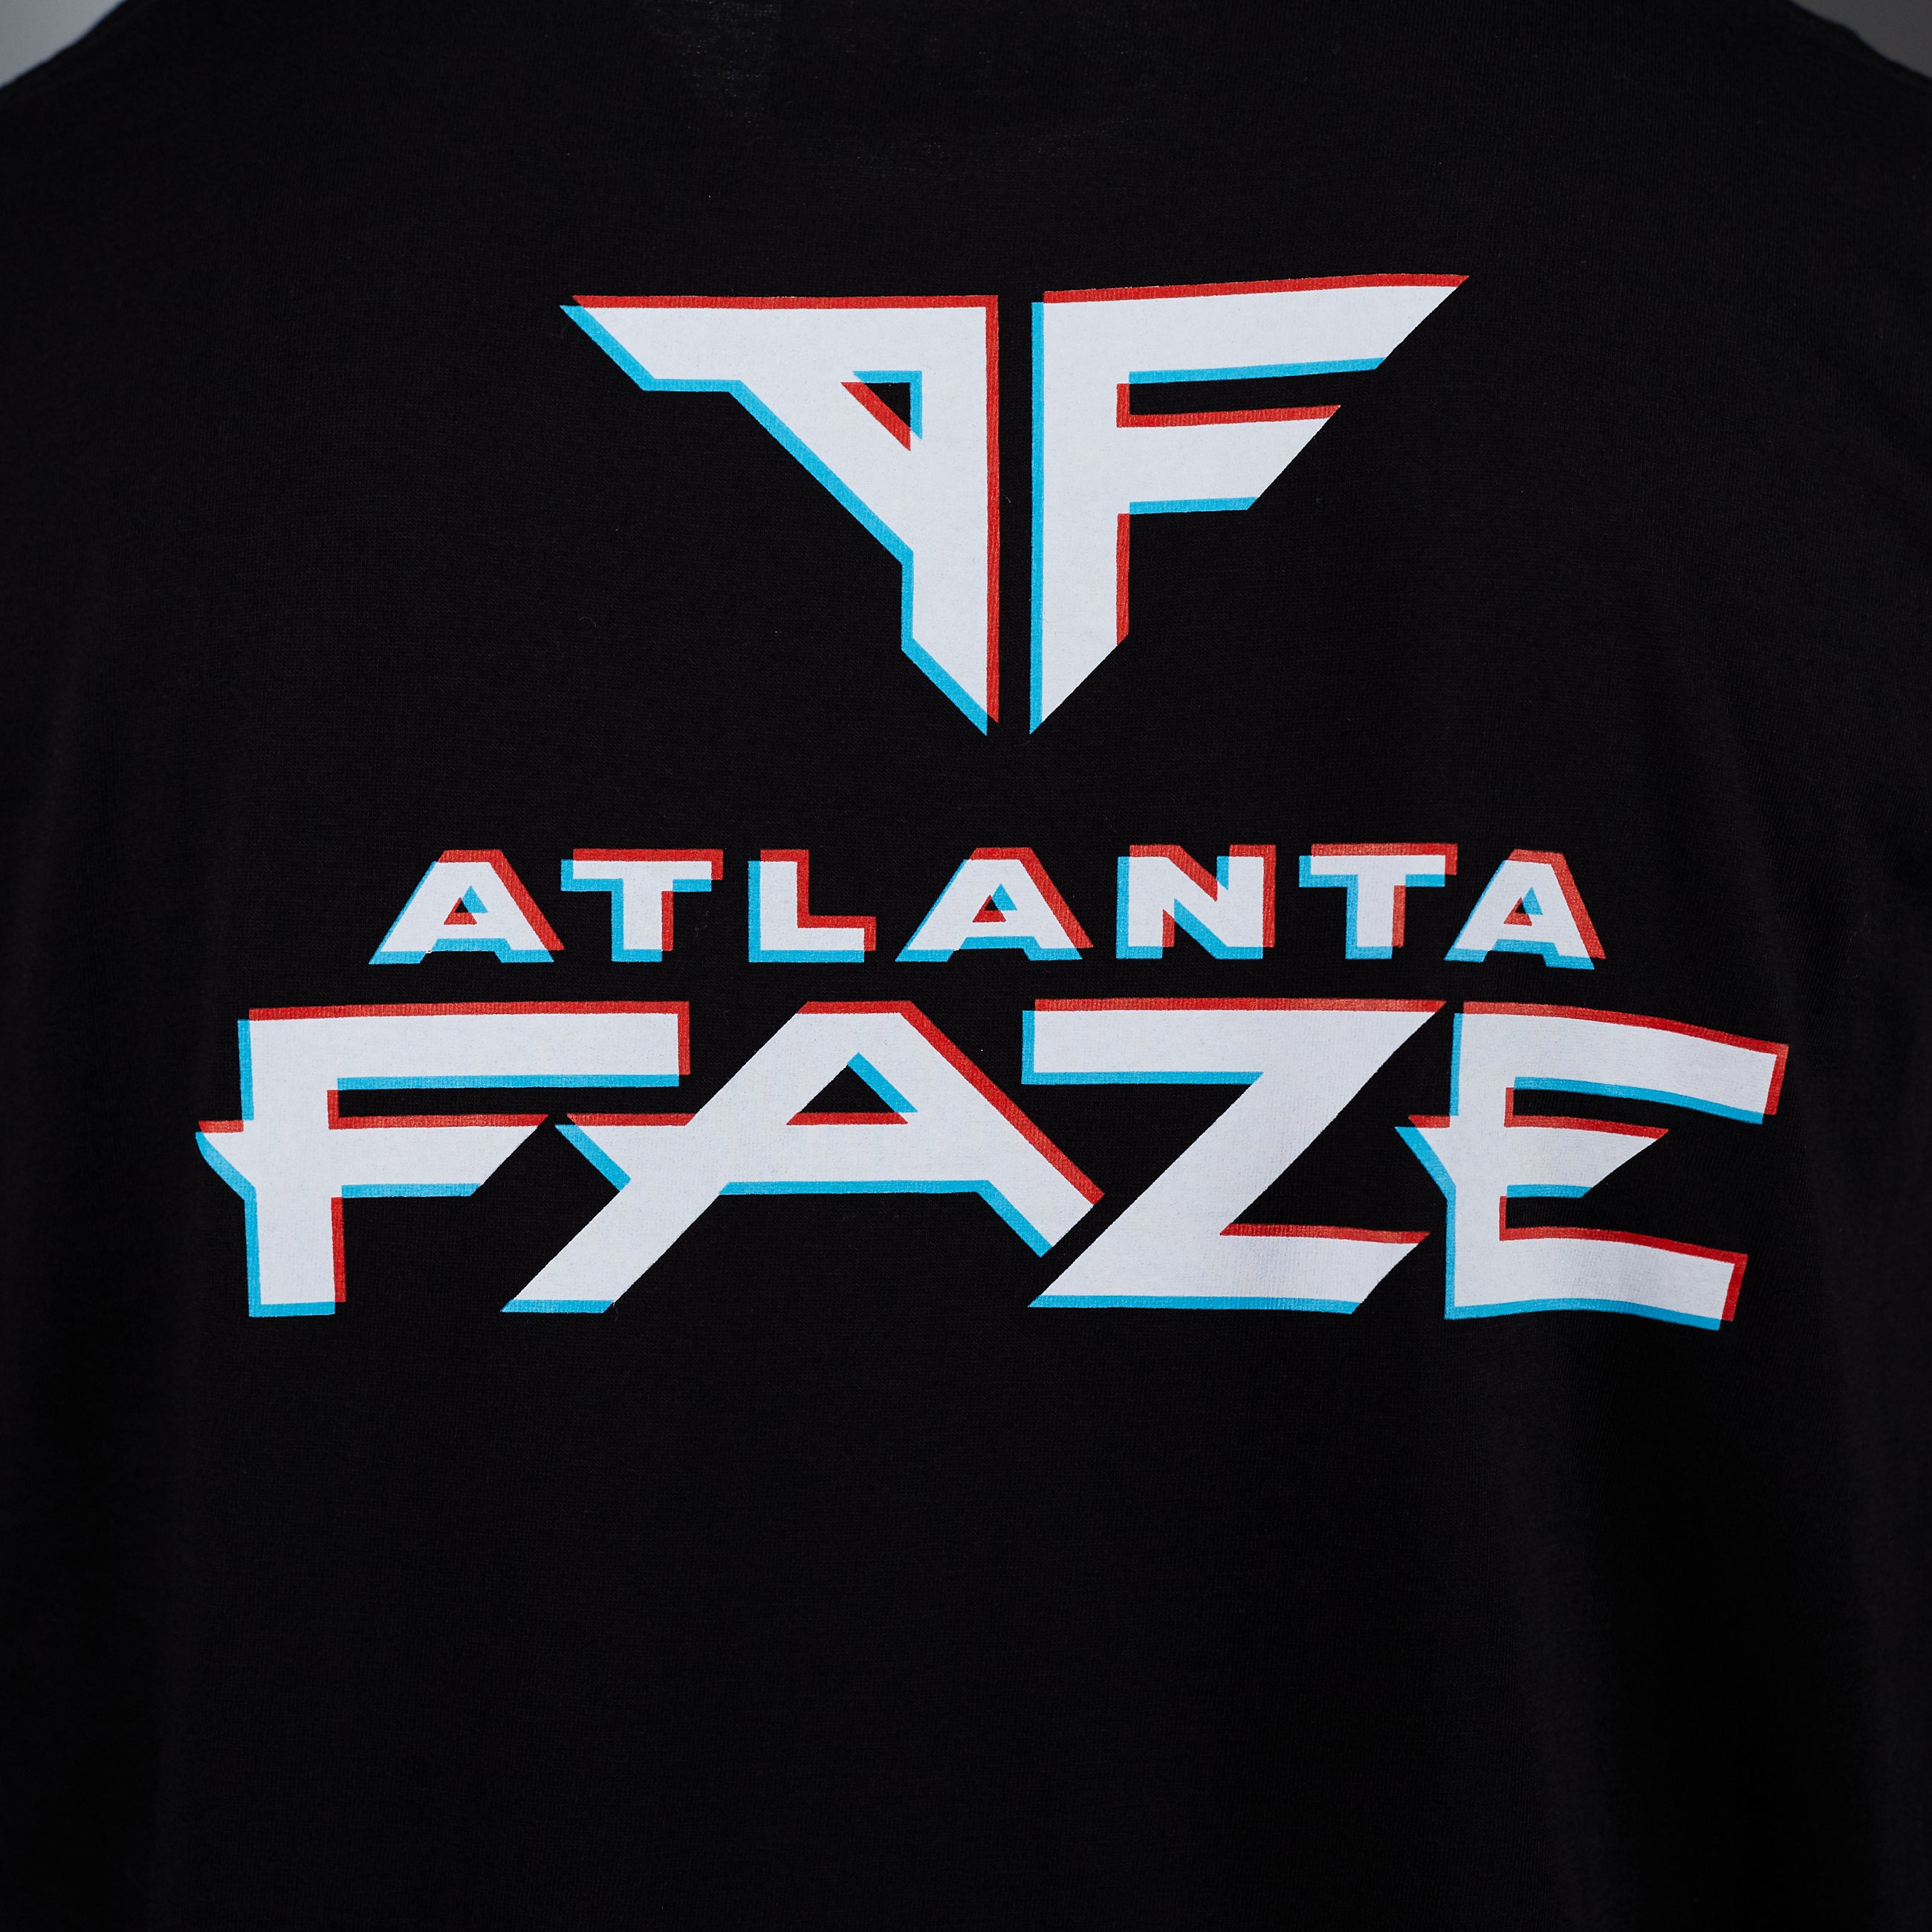 Atlanta Faze Tilt Shift S/S Tee